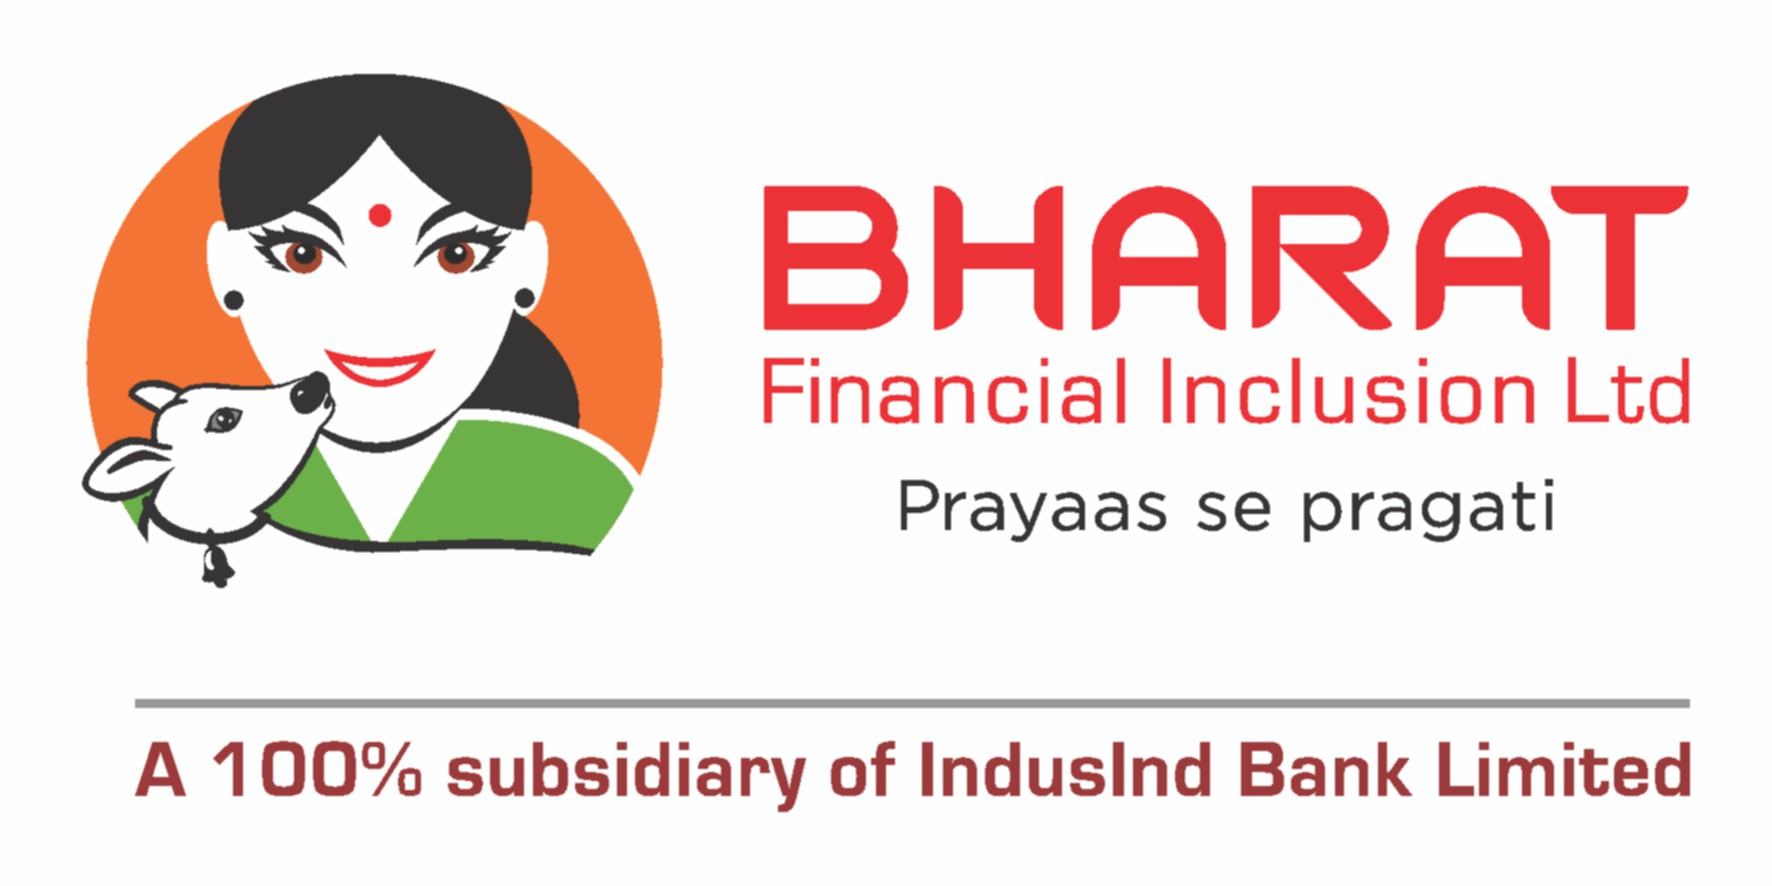 Bharat Financial Inclusion Ltd